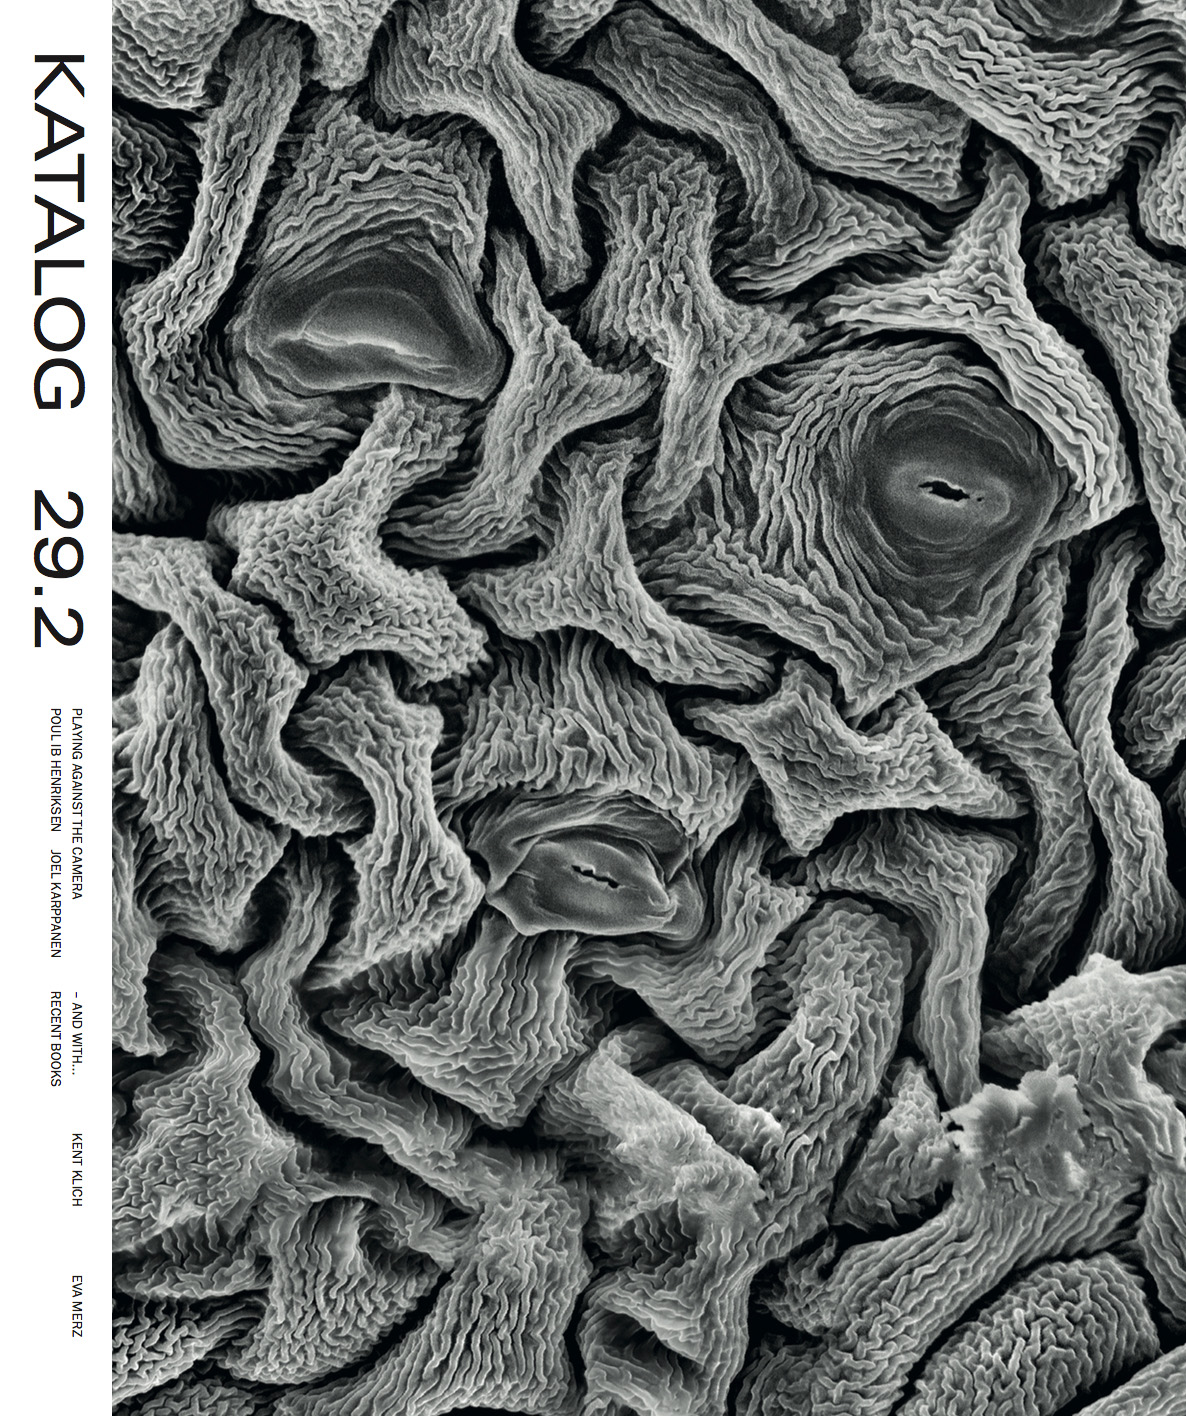 Katalog - Journal of Photography & Video29.2 Nov. 2018 - PLAYING AGAINST THE CAMERAF&D Cartier Wait and See, 1998 - present